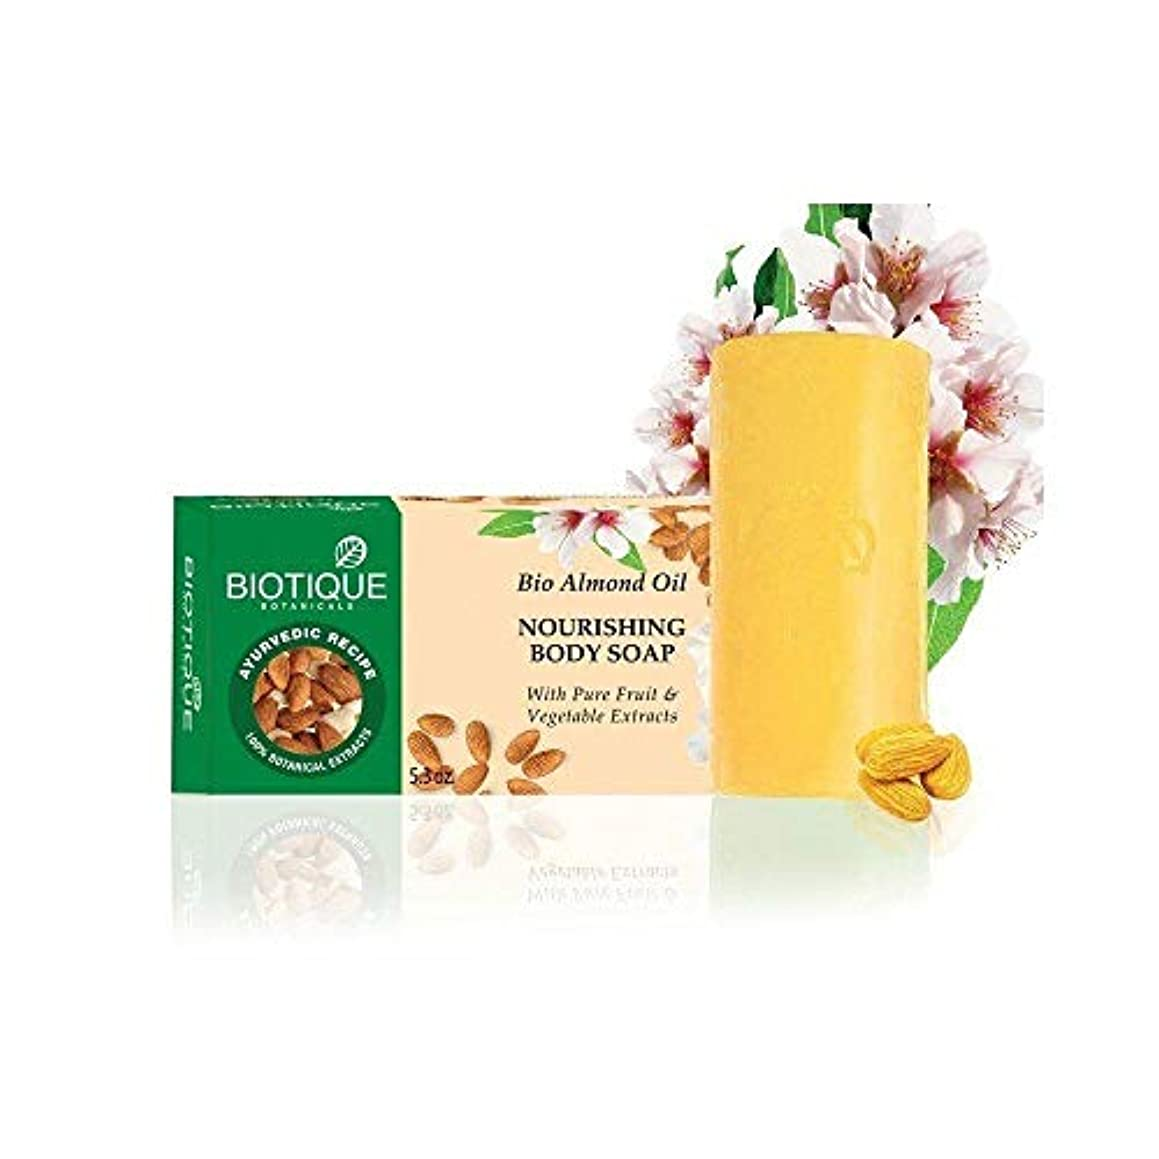 欠点交換明らかBiotique Bio Almond Oil Nourishing Body Soap - 150g (Pack of 2) wash Impurities Biotique Bio Almond Oilナリッシングボディソープ...